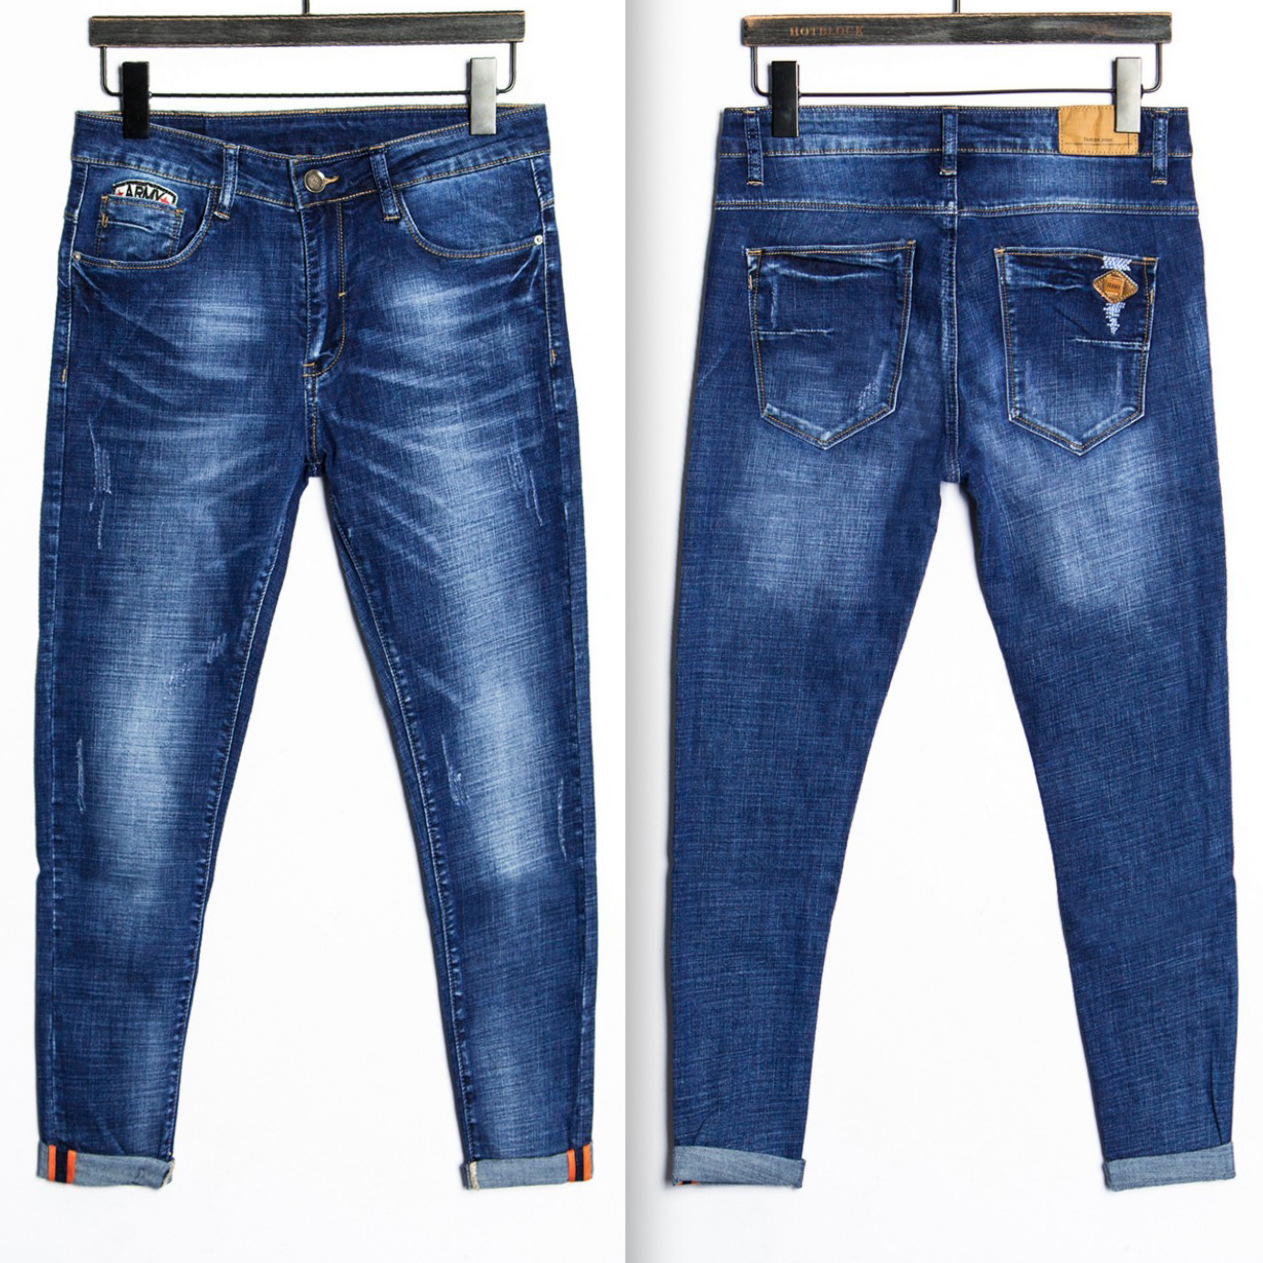 2017 New Arrival Nigrity Zipper Fly Slim Mid Straight Midweight Full Length Solid Pockets Jeans